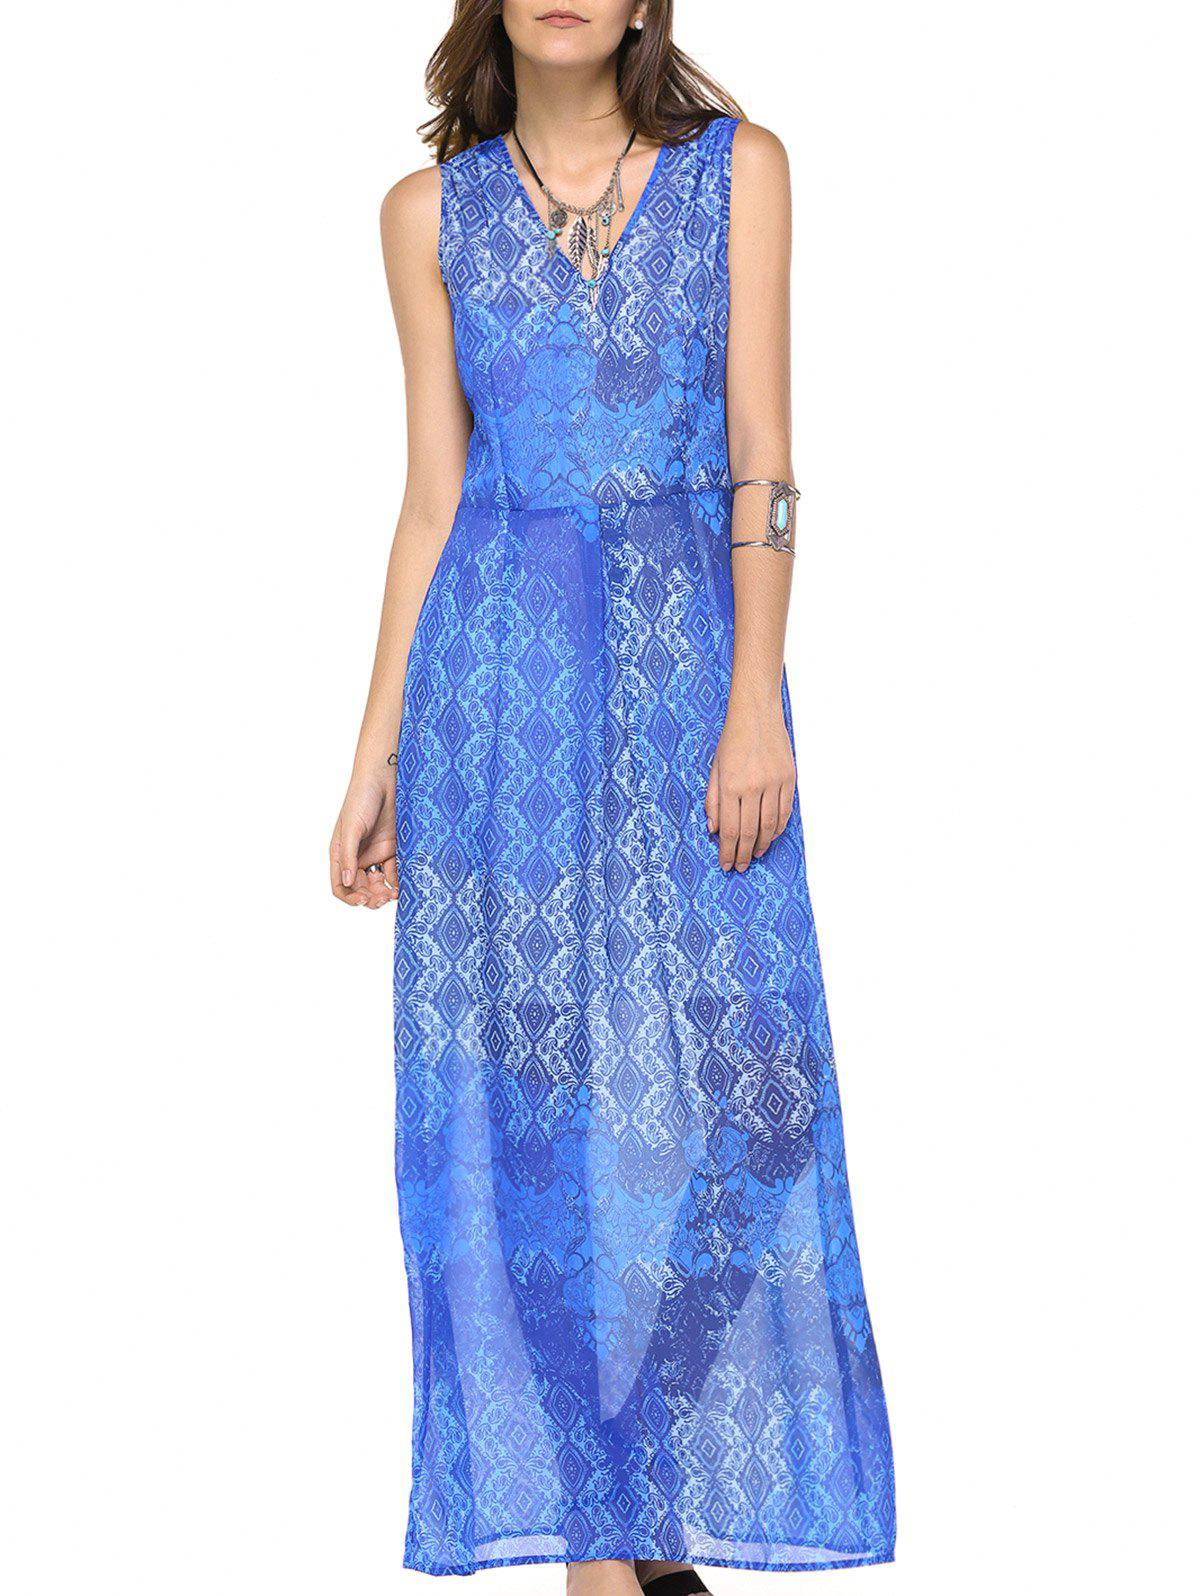 Fashionable Women's V-neck Sleeveless Print Maxi Dress - BLUISH VIOLET L